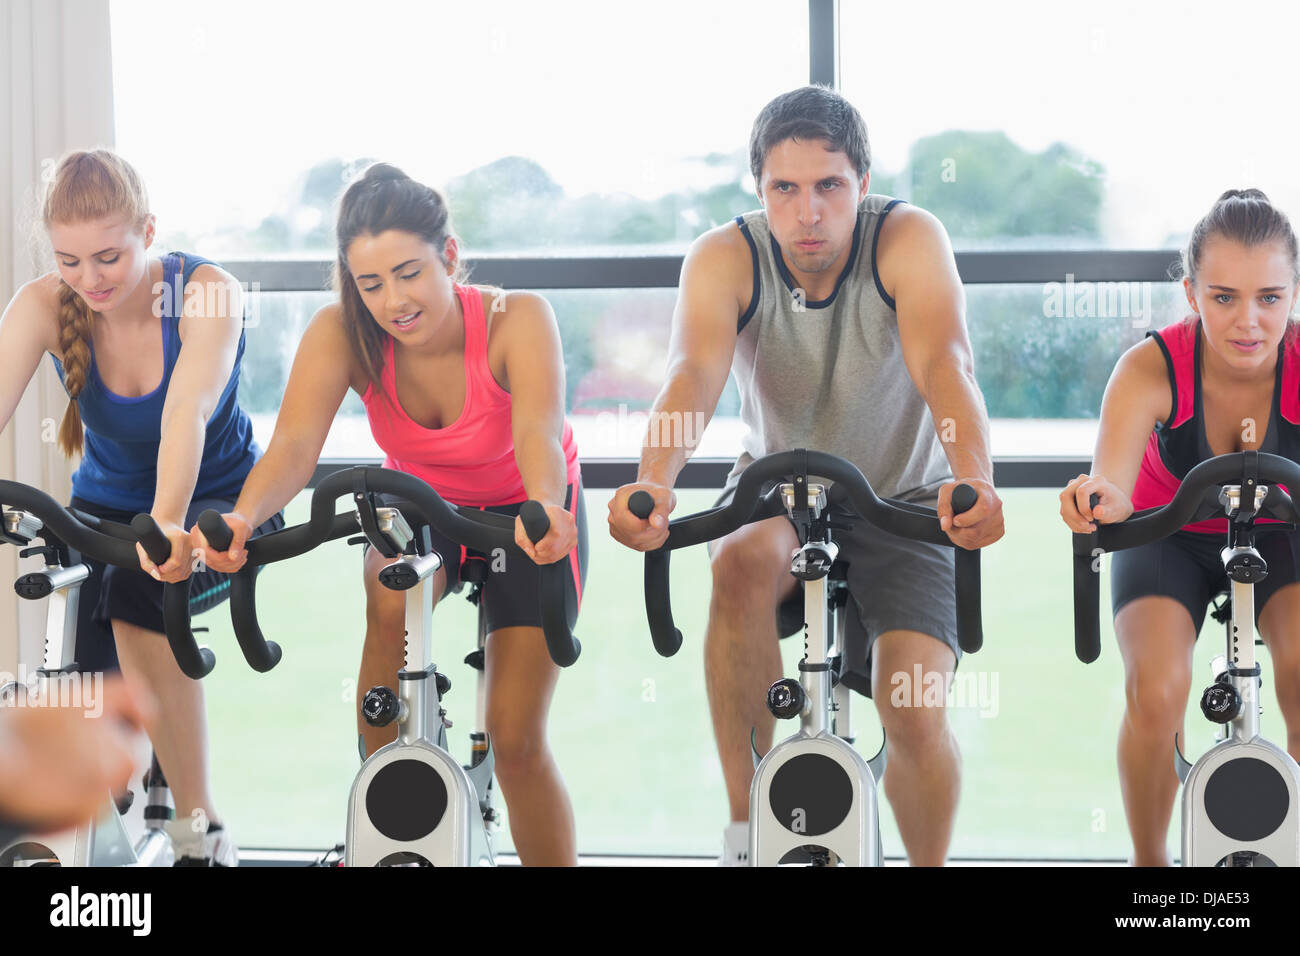 Determined people working out at spinning class - Stock Image